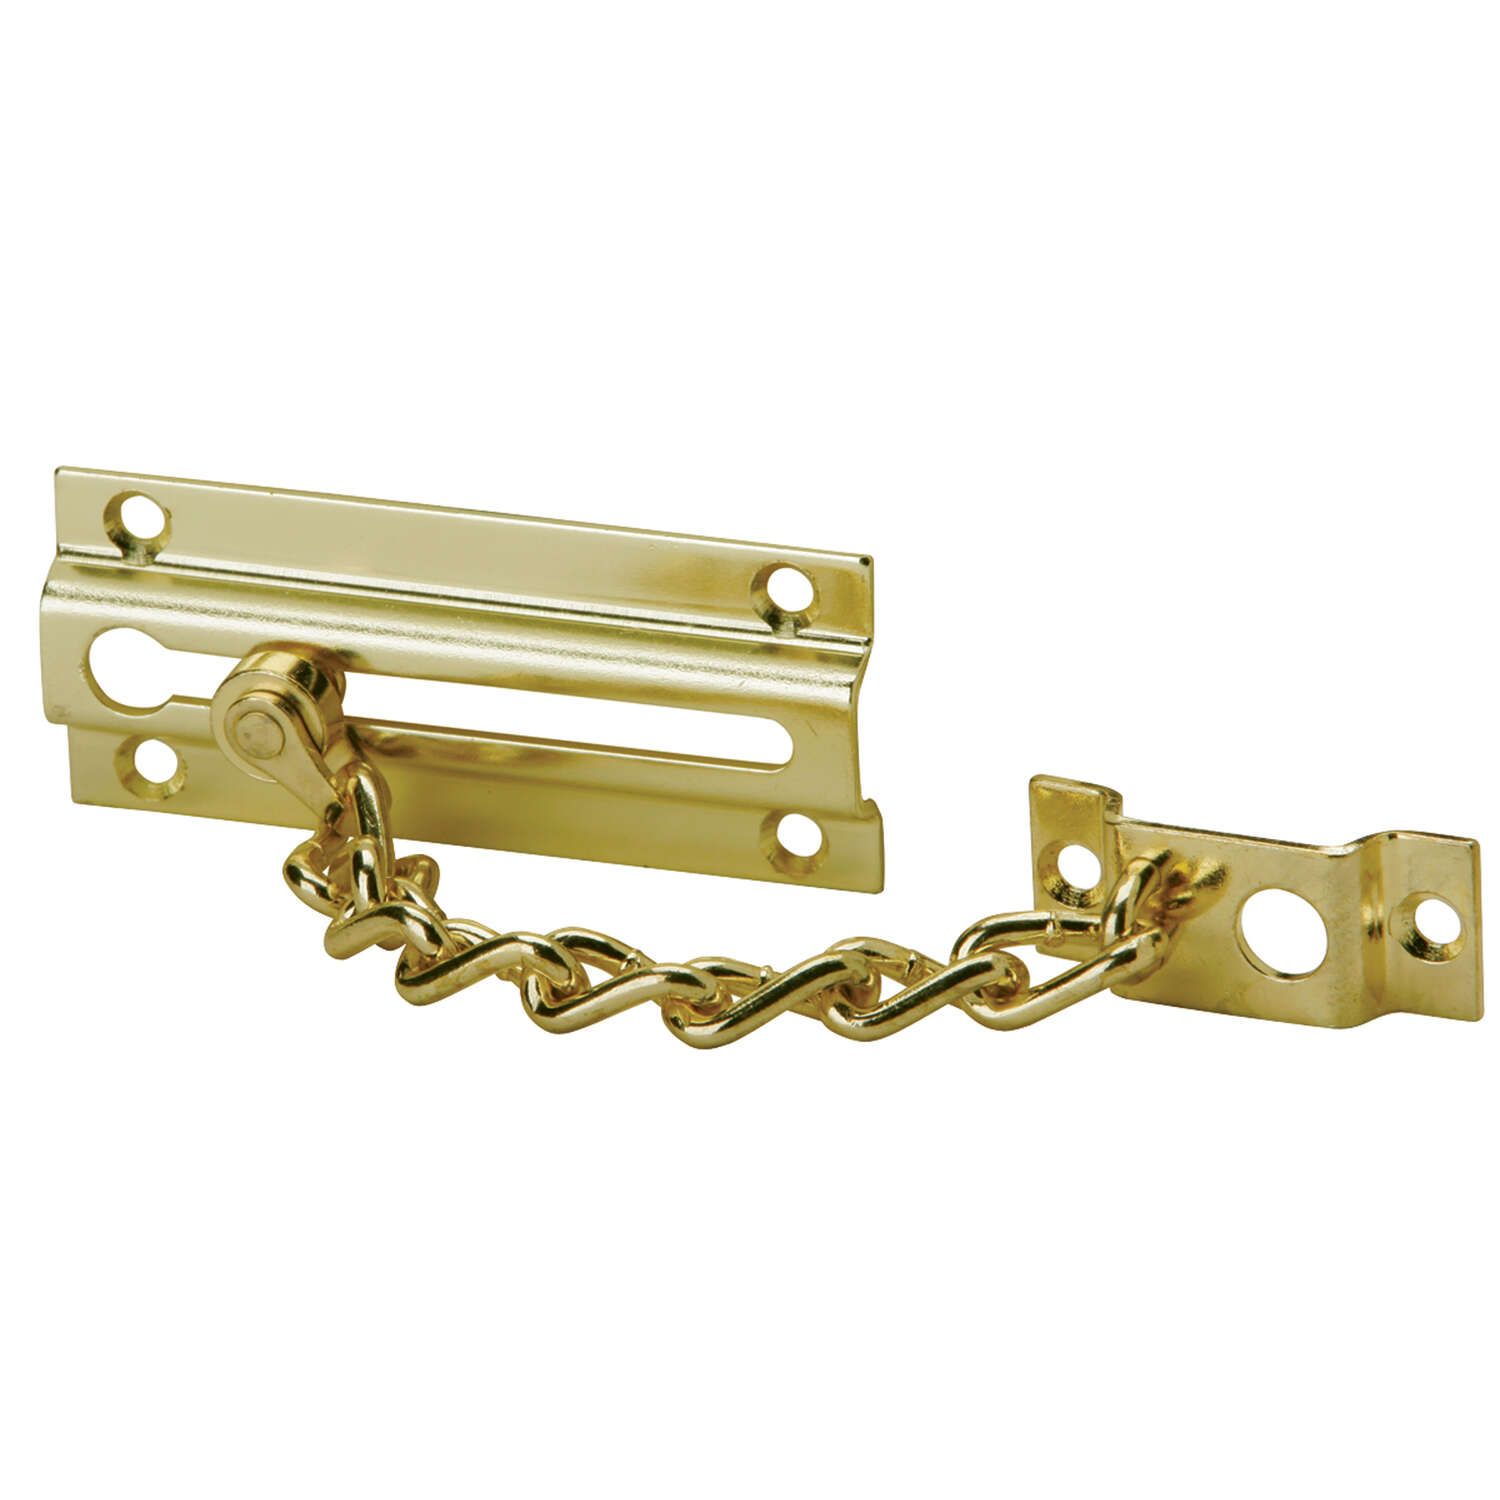 Ives  1-7/16 in. H x 3-3/8 in. L Polished Brass  Brass  Chain Door Guard